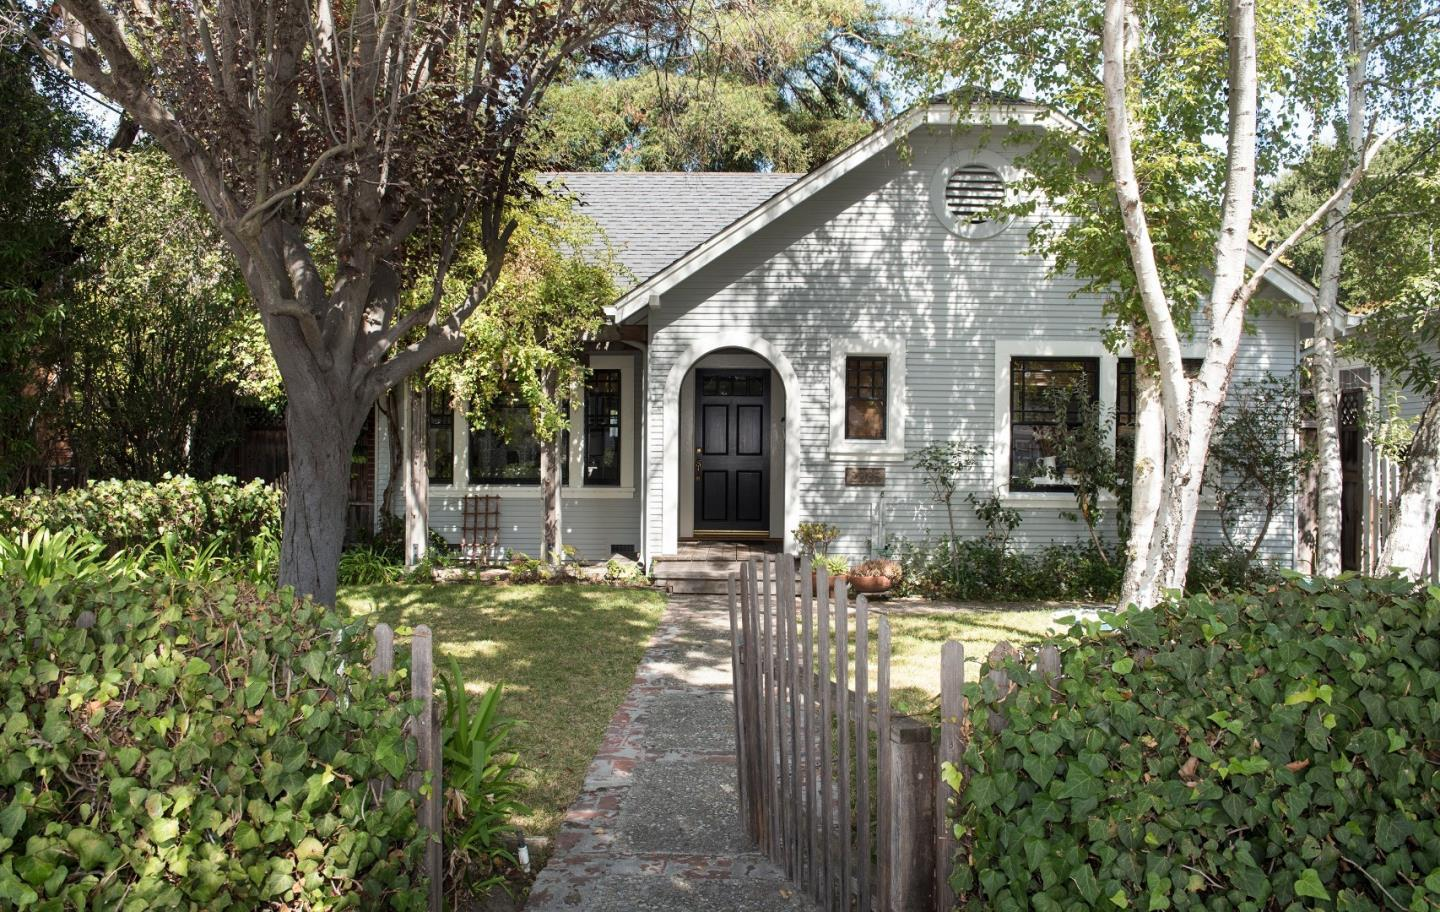 Pleasant 2065 Park Blvd Palo Alto Ca Mls 81727149 Heritage Download Free Architecture Designs Crovemadebymaigaardcom